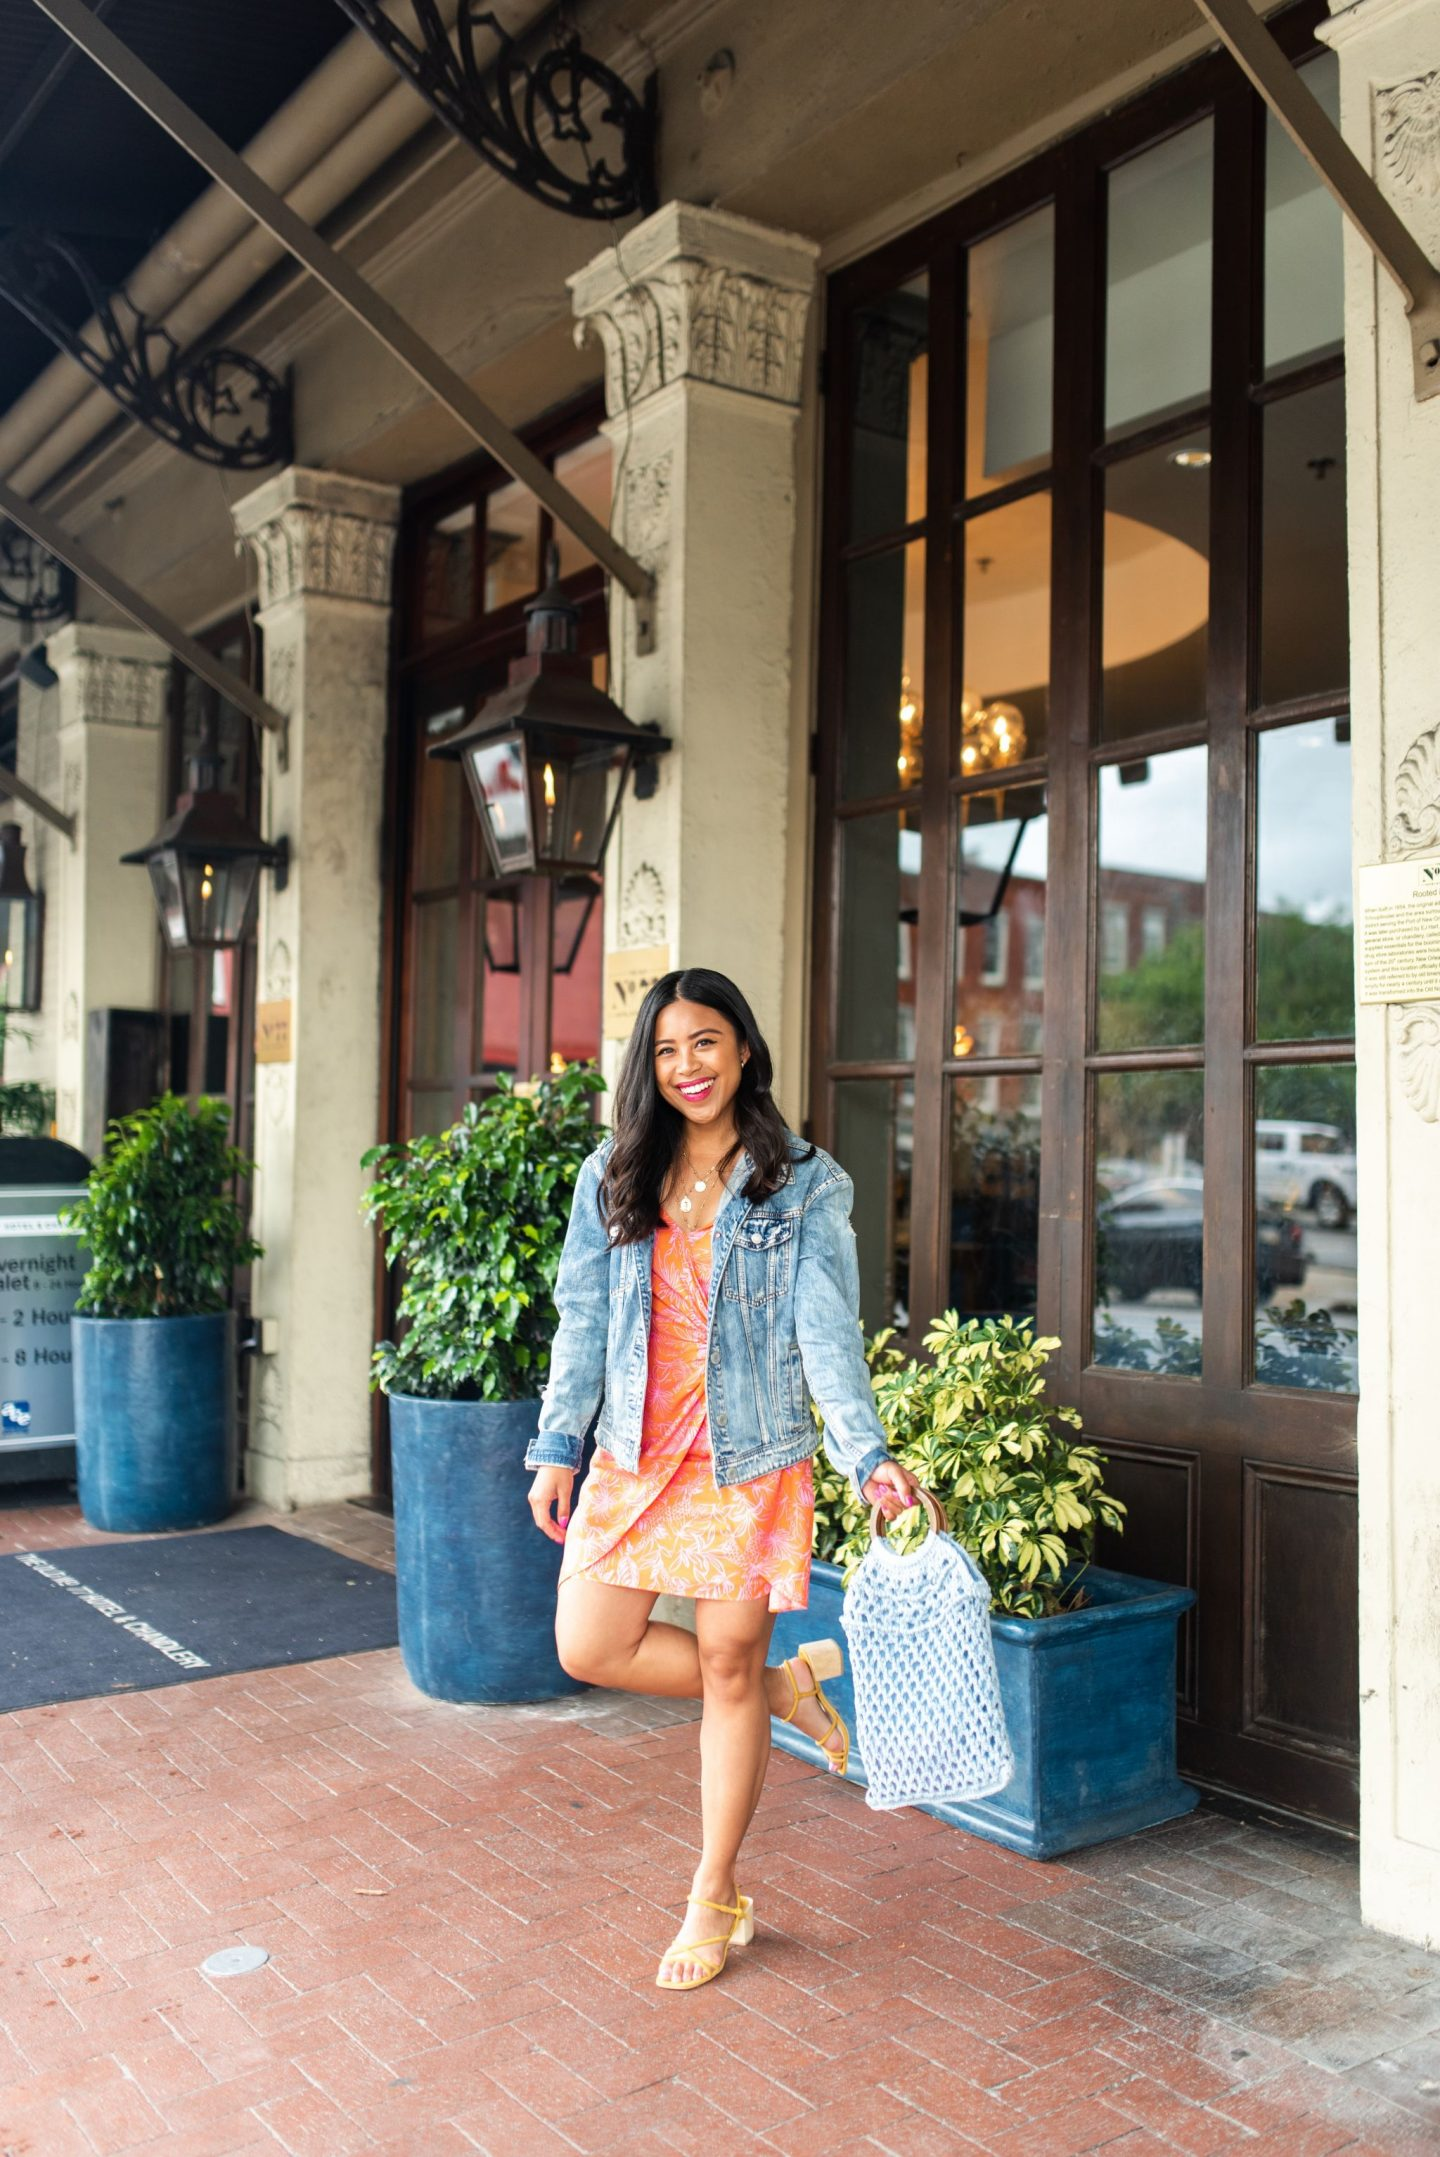 Hotel photo shoot inspiriation - Emmas Edition - Travel Style - Travel Blogger - NOLA